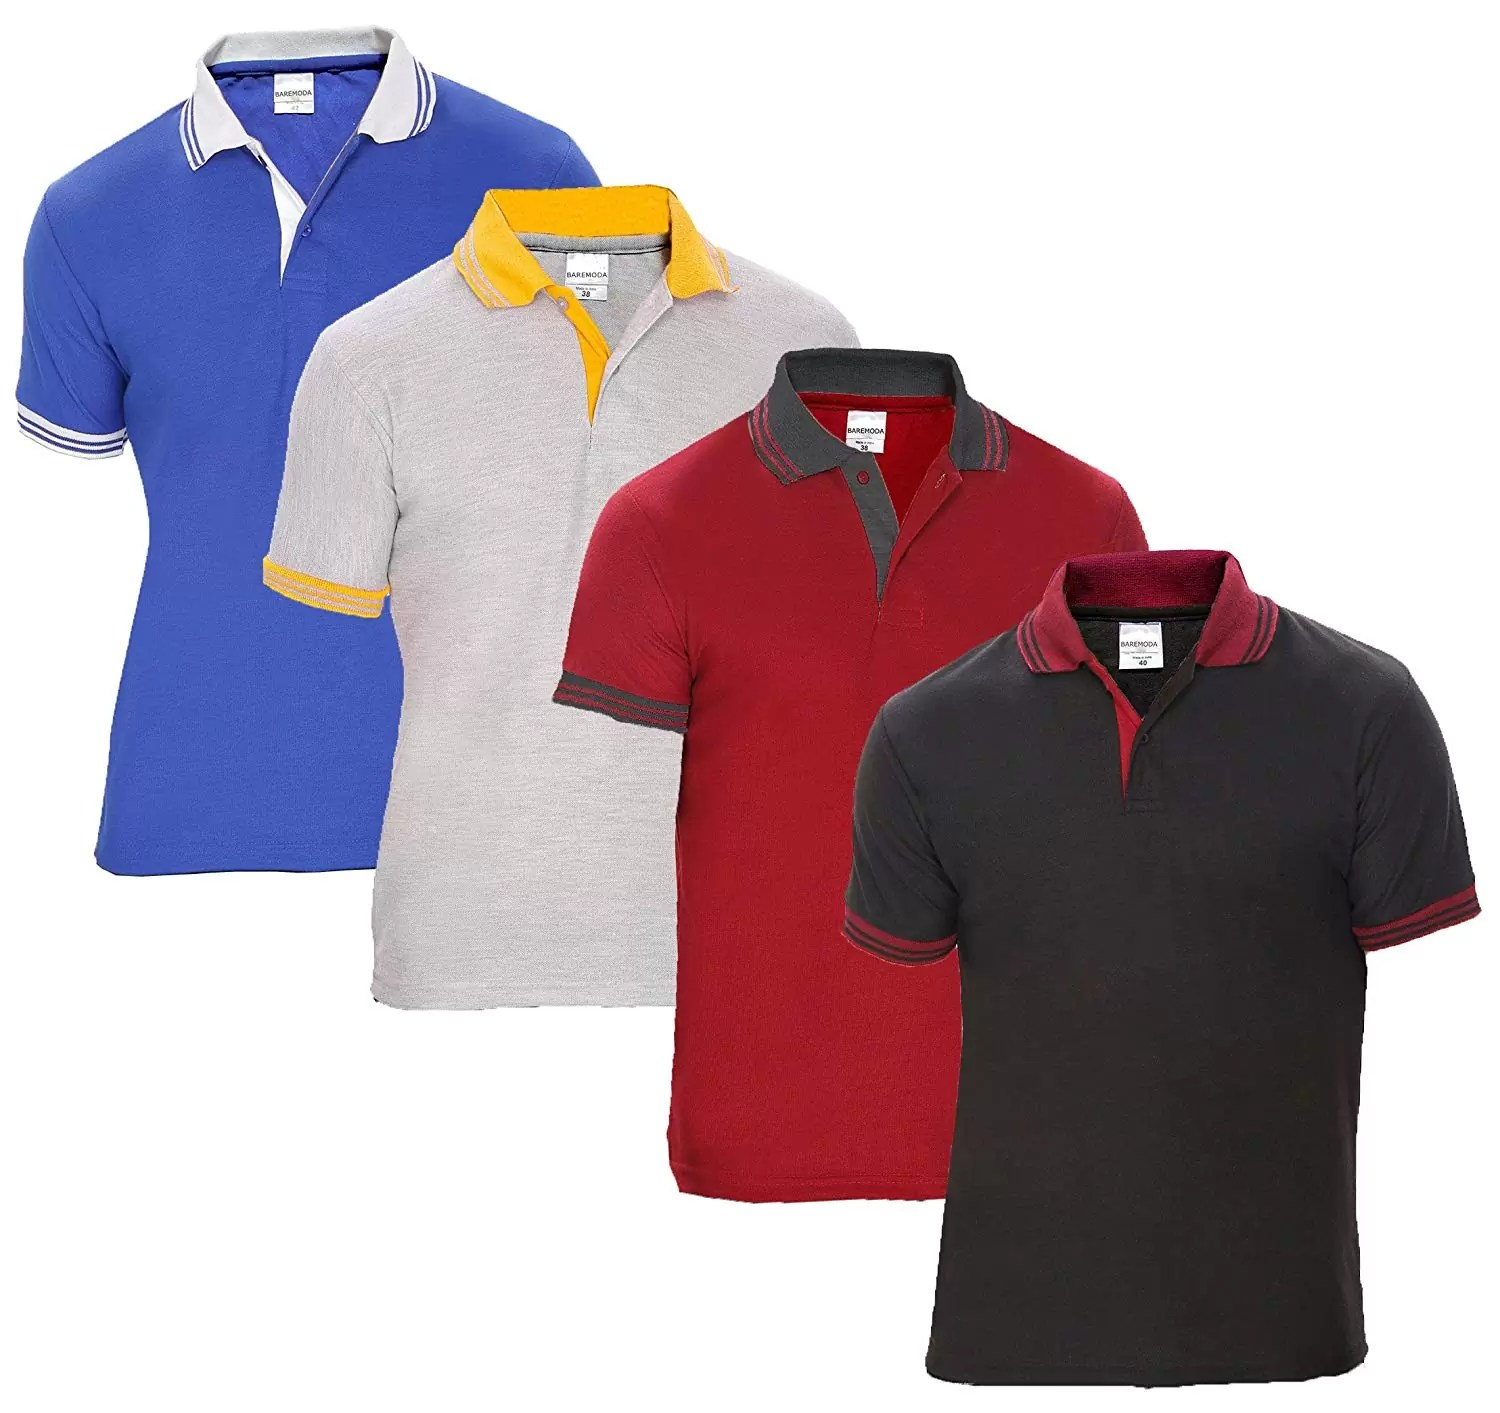 Polo Shirt from SNM Apparels